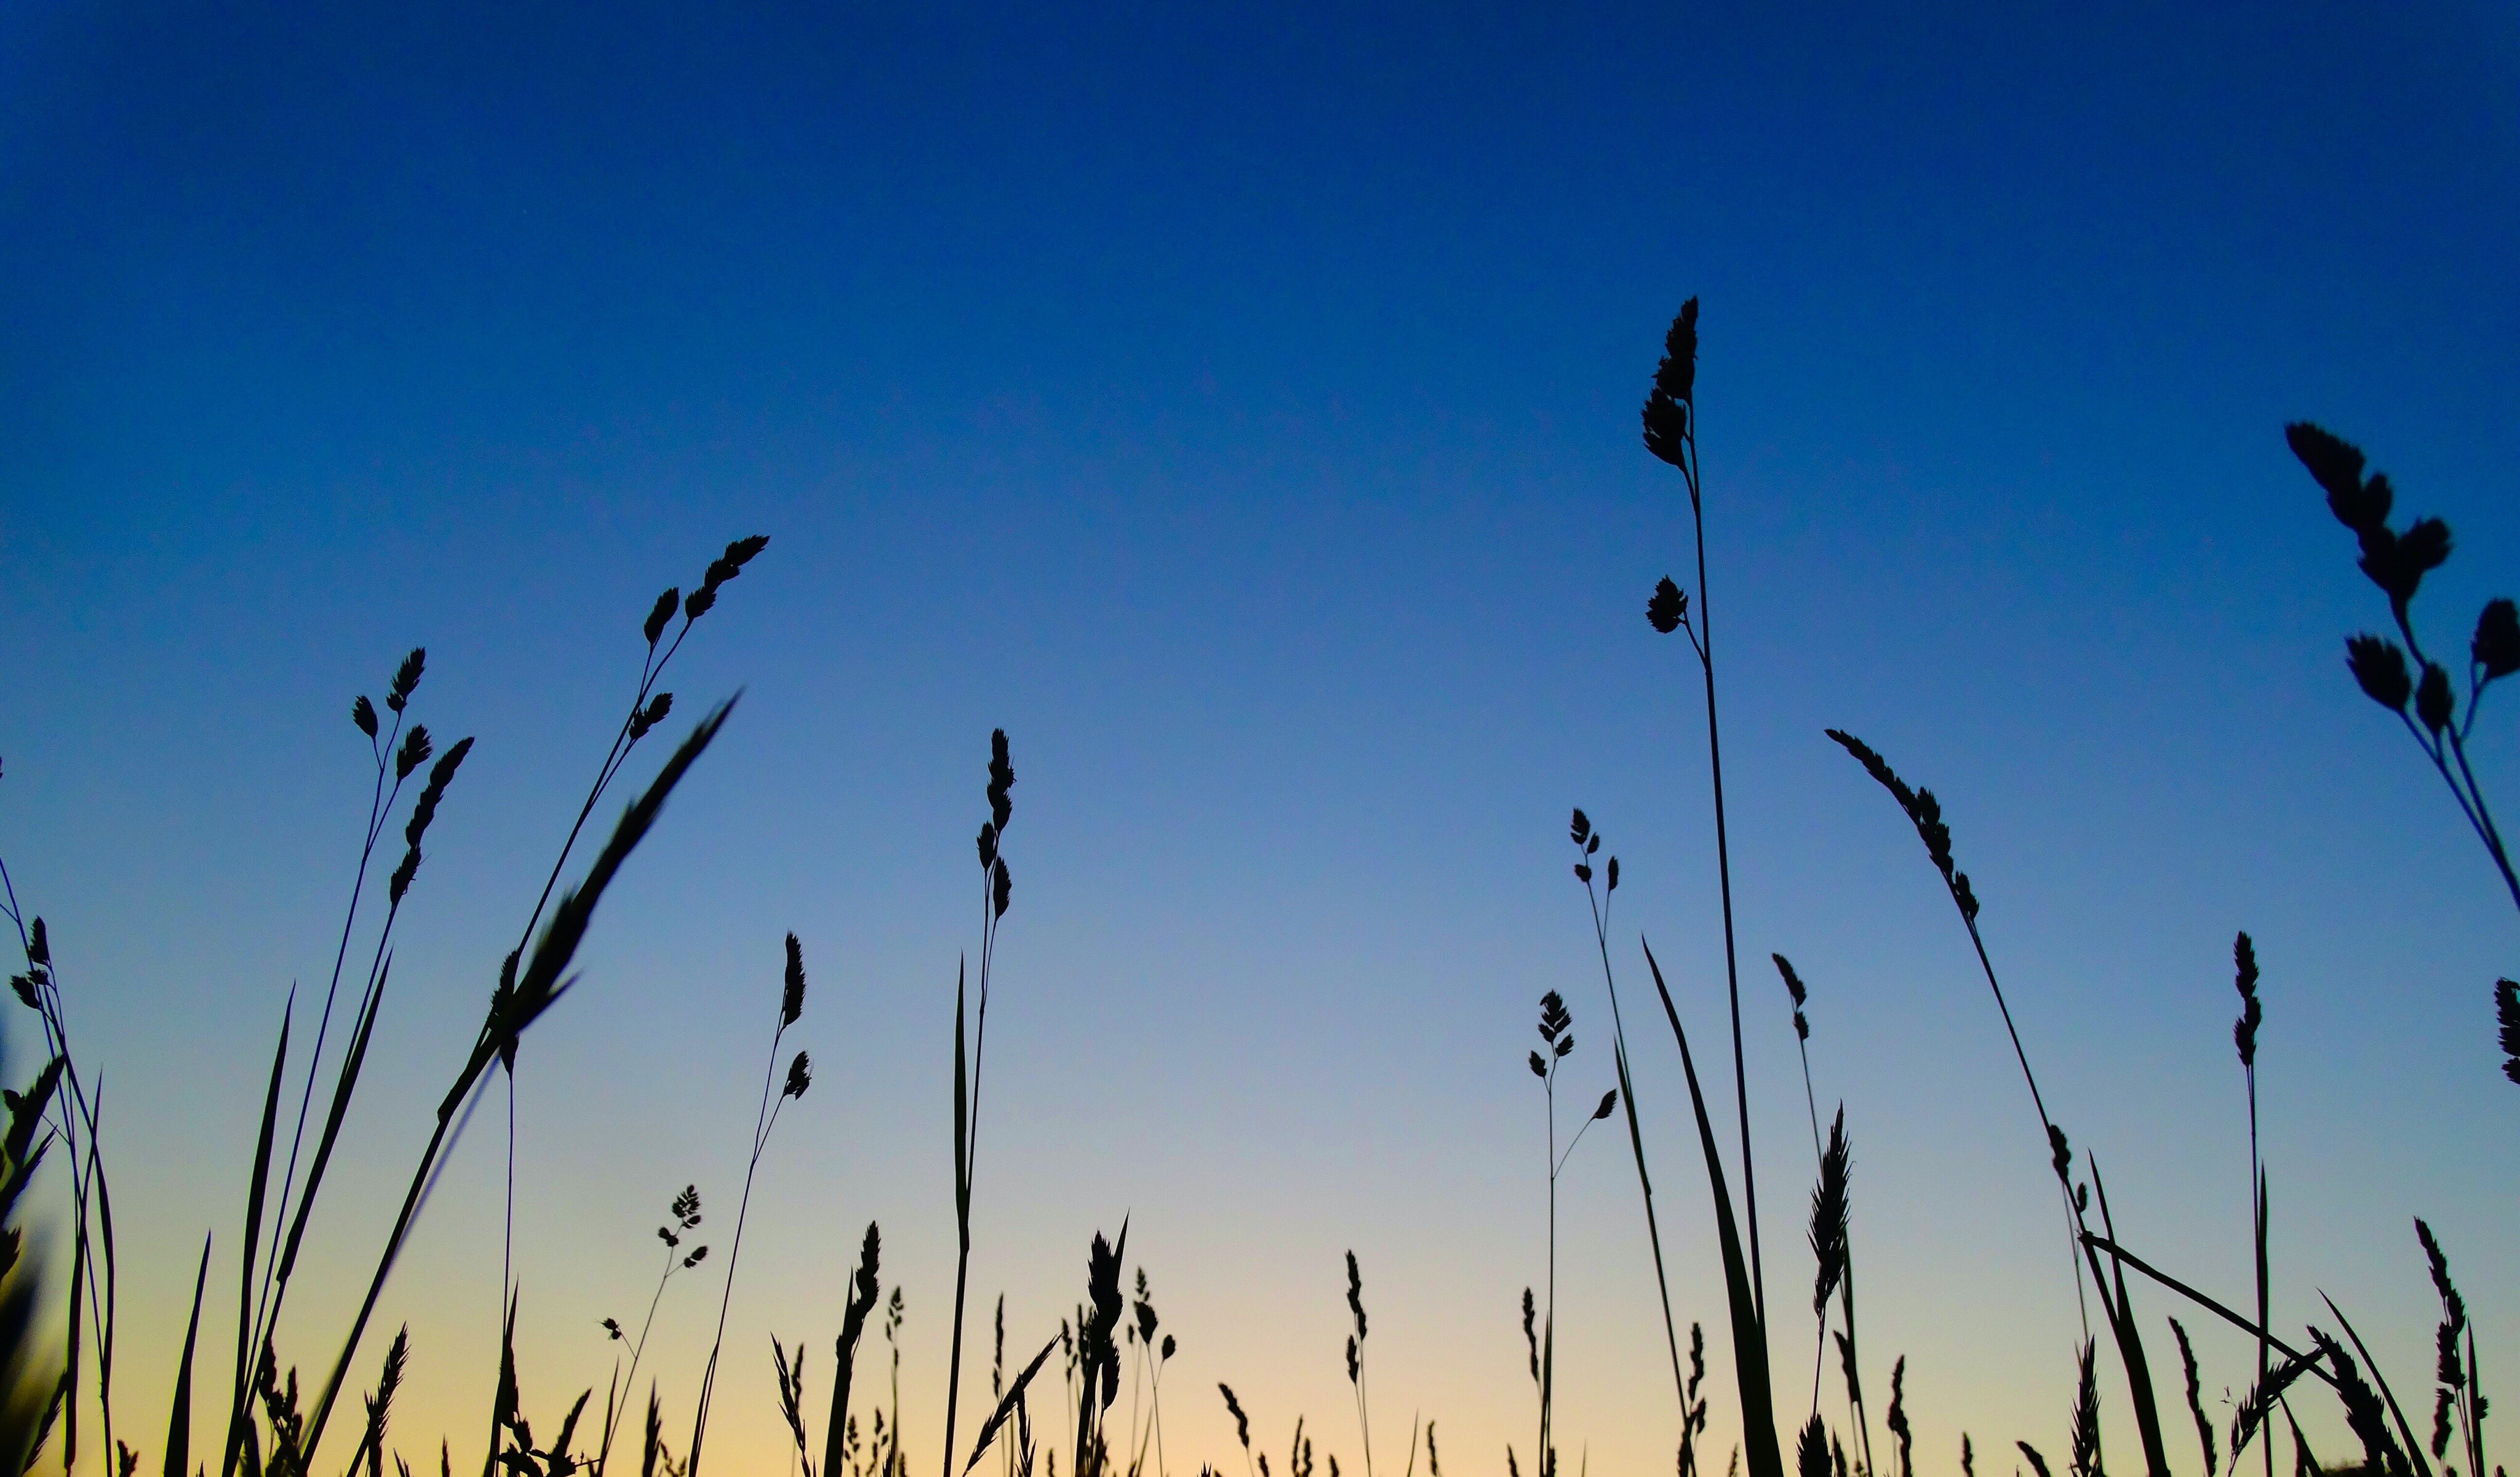 worms-eye view of grasses under blue sky